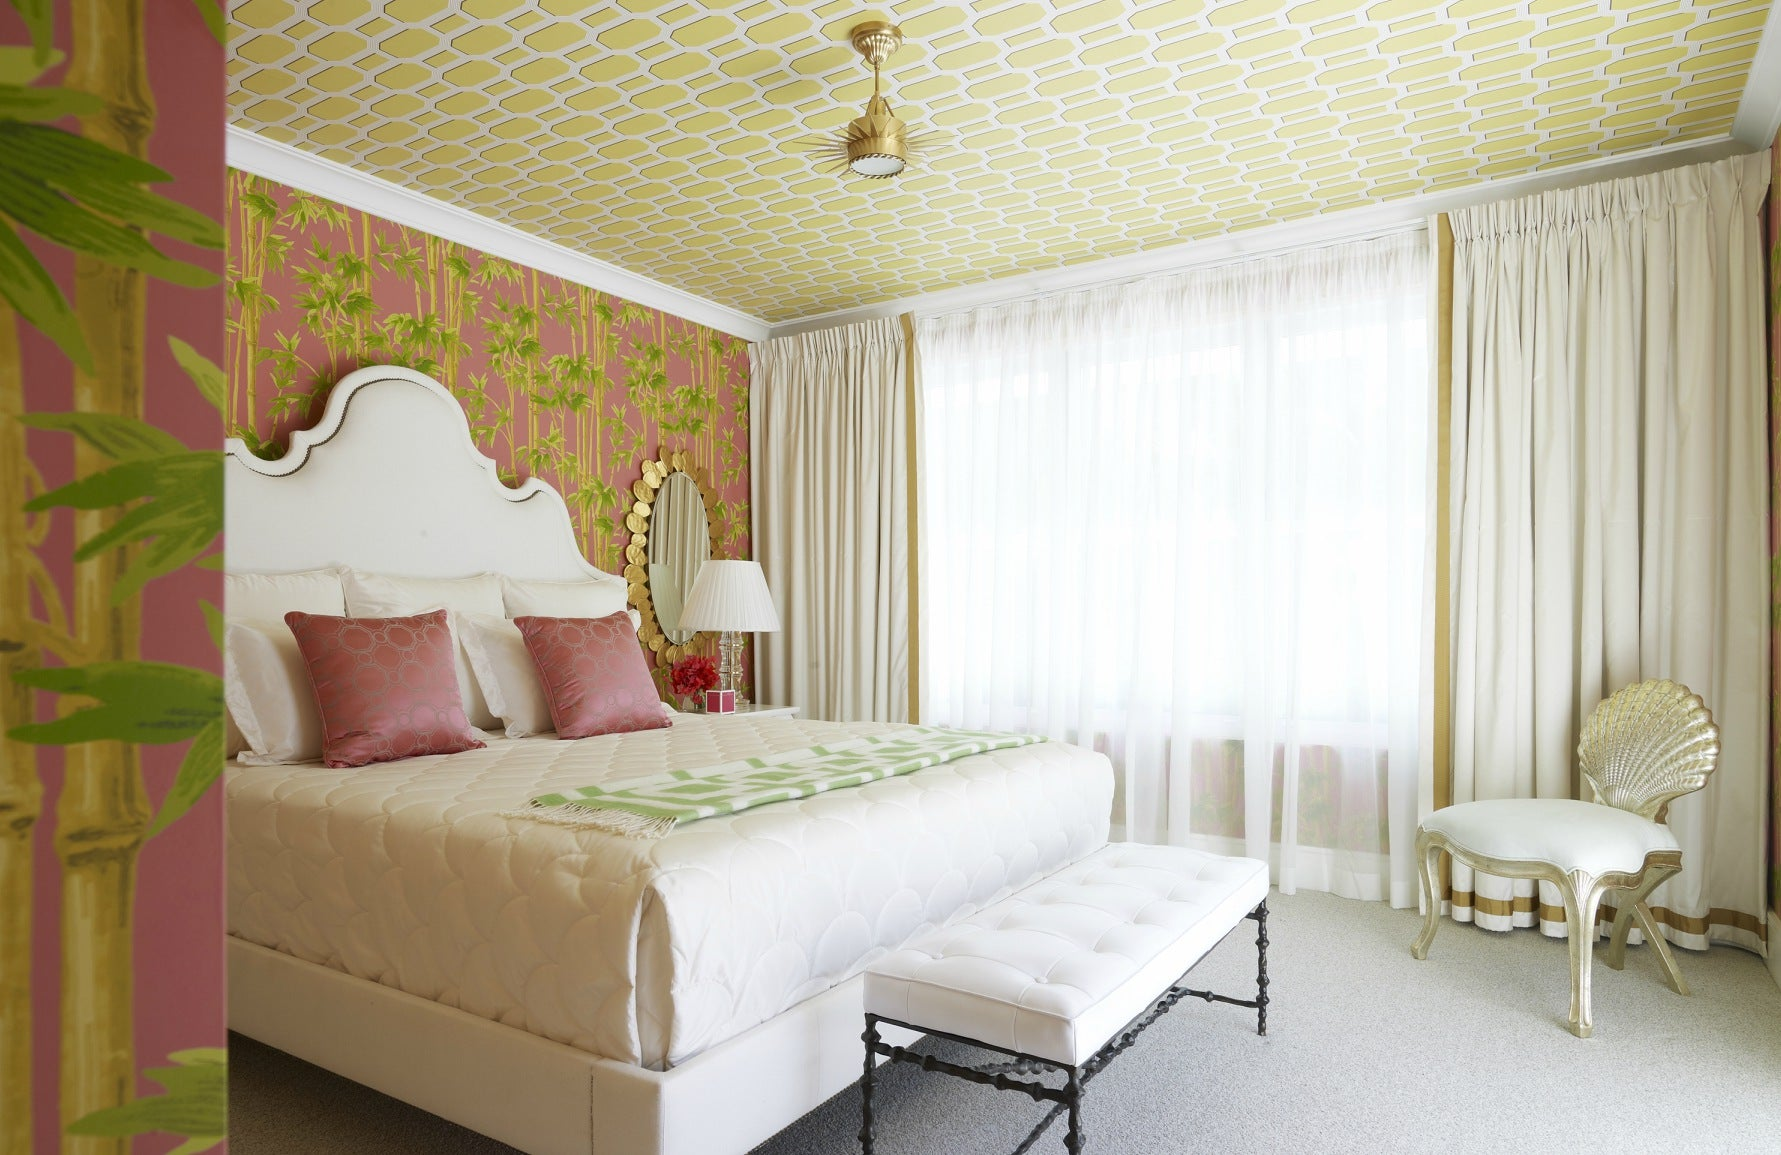 Living room wallpaper | Colourful bedroom | Greg Natale bedroom | The Luxurist | Read more at LuxDeco.com